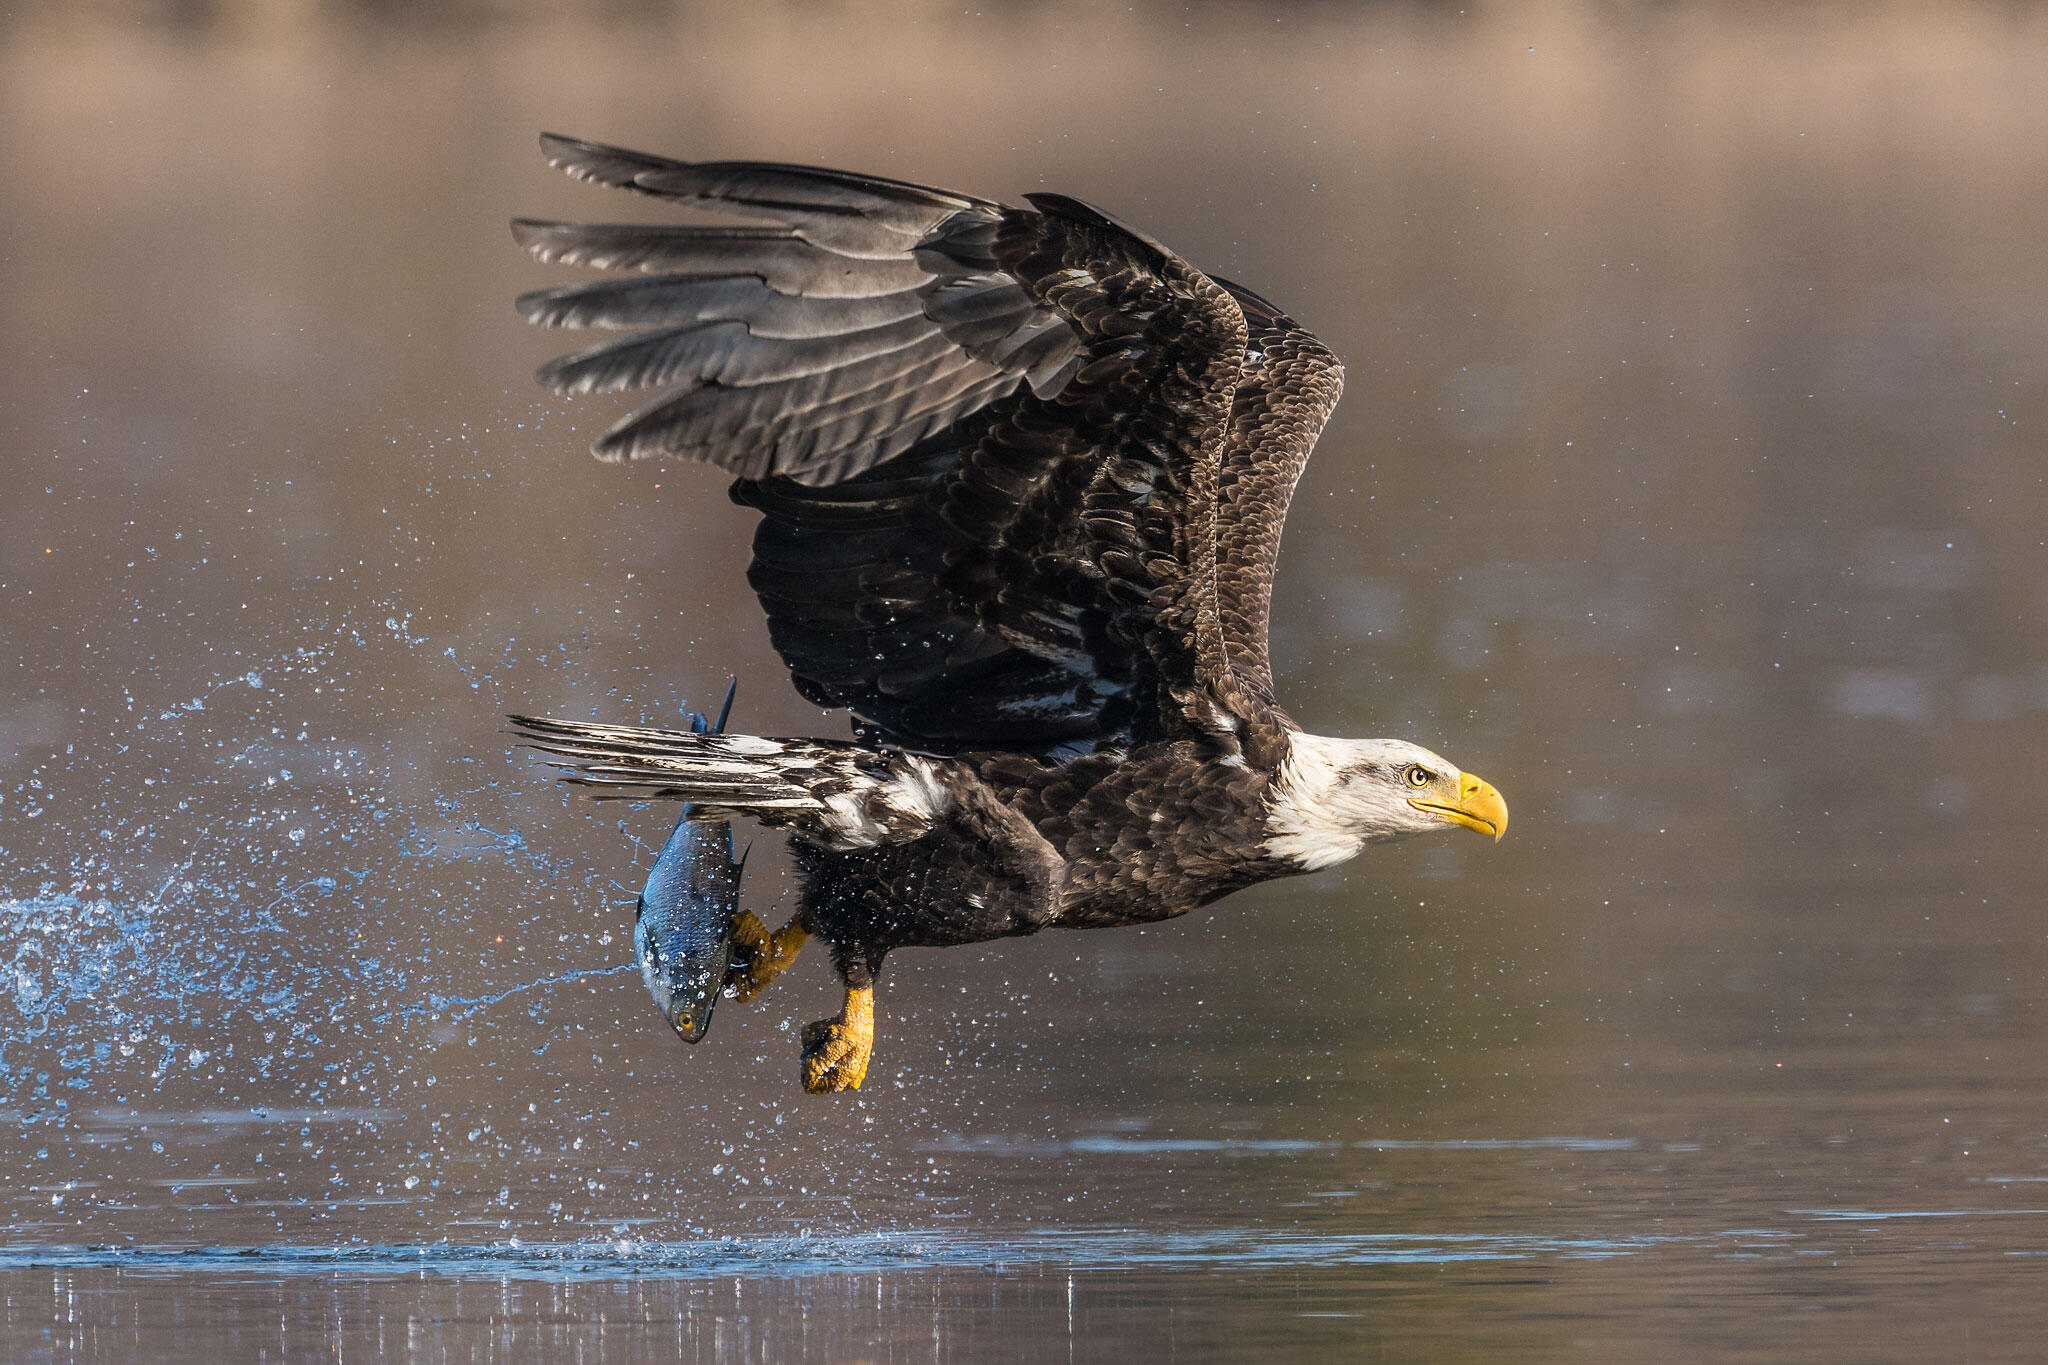 Before the MBTA, Bald Eagles were frequently electrocuted by power lines. The threat of prosecution under the law encouraged utilities to develop bird-safe guidelines to minimize unnecessary deaths. Mark Boyd/Audubon Photography Awards